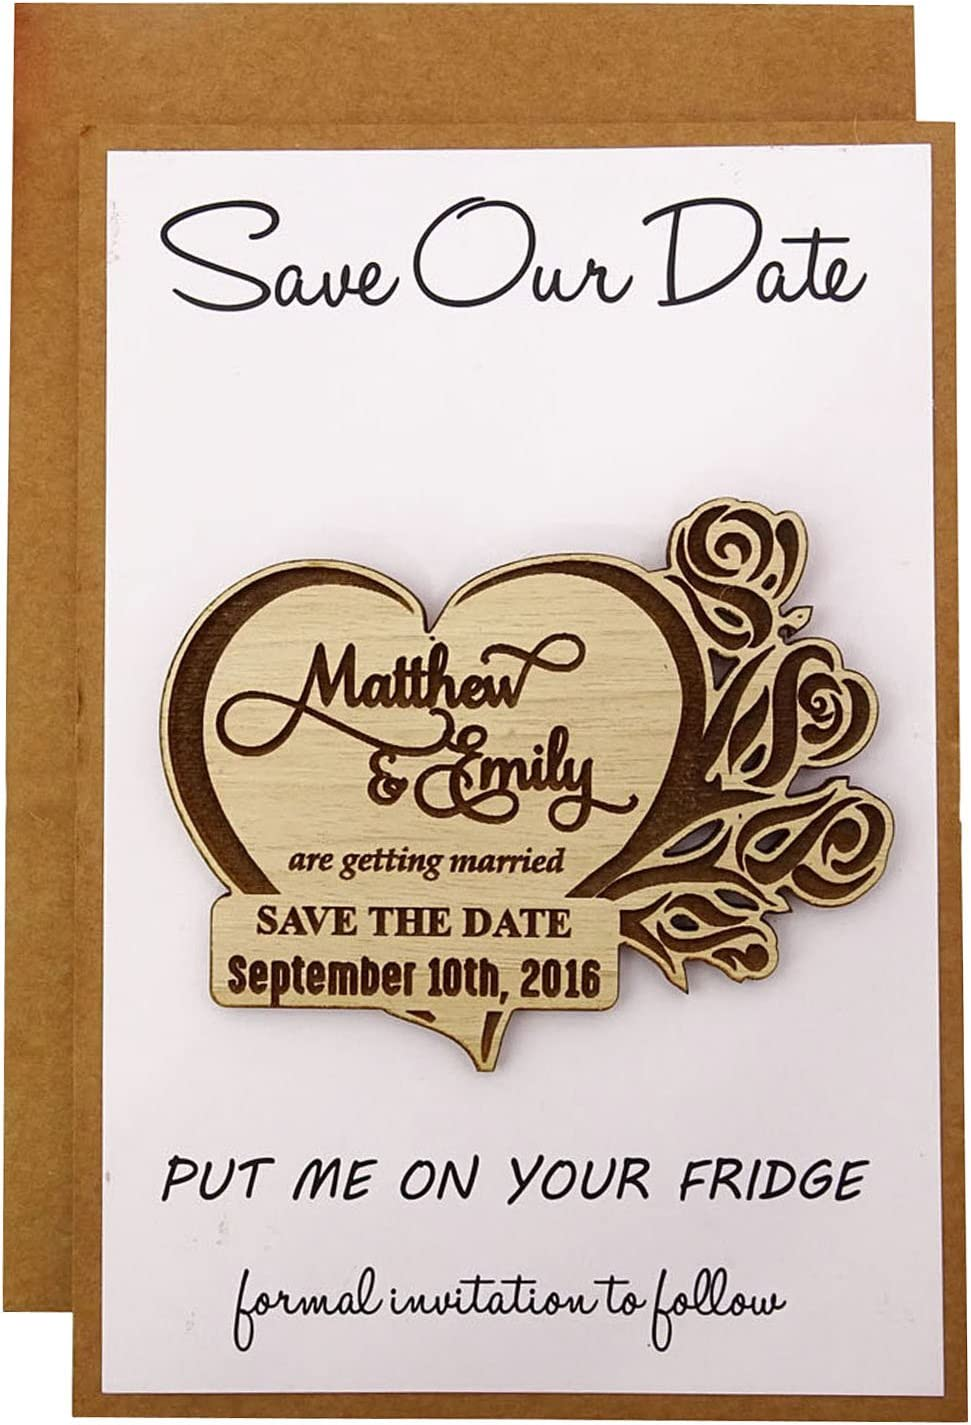 Custom Engraved Wooden Magnet Personalized Gift 40 Rustic Wedding Save the Date Wooden Magnet